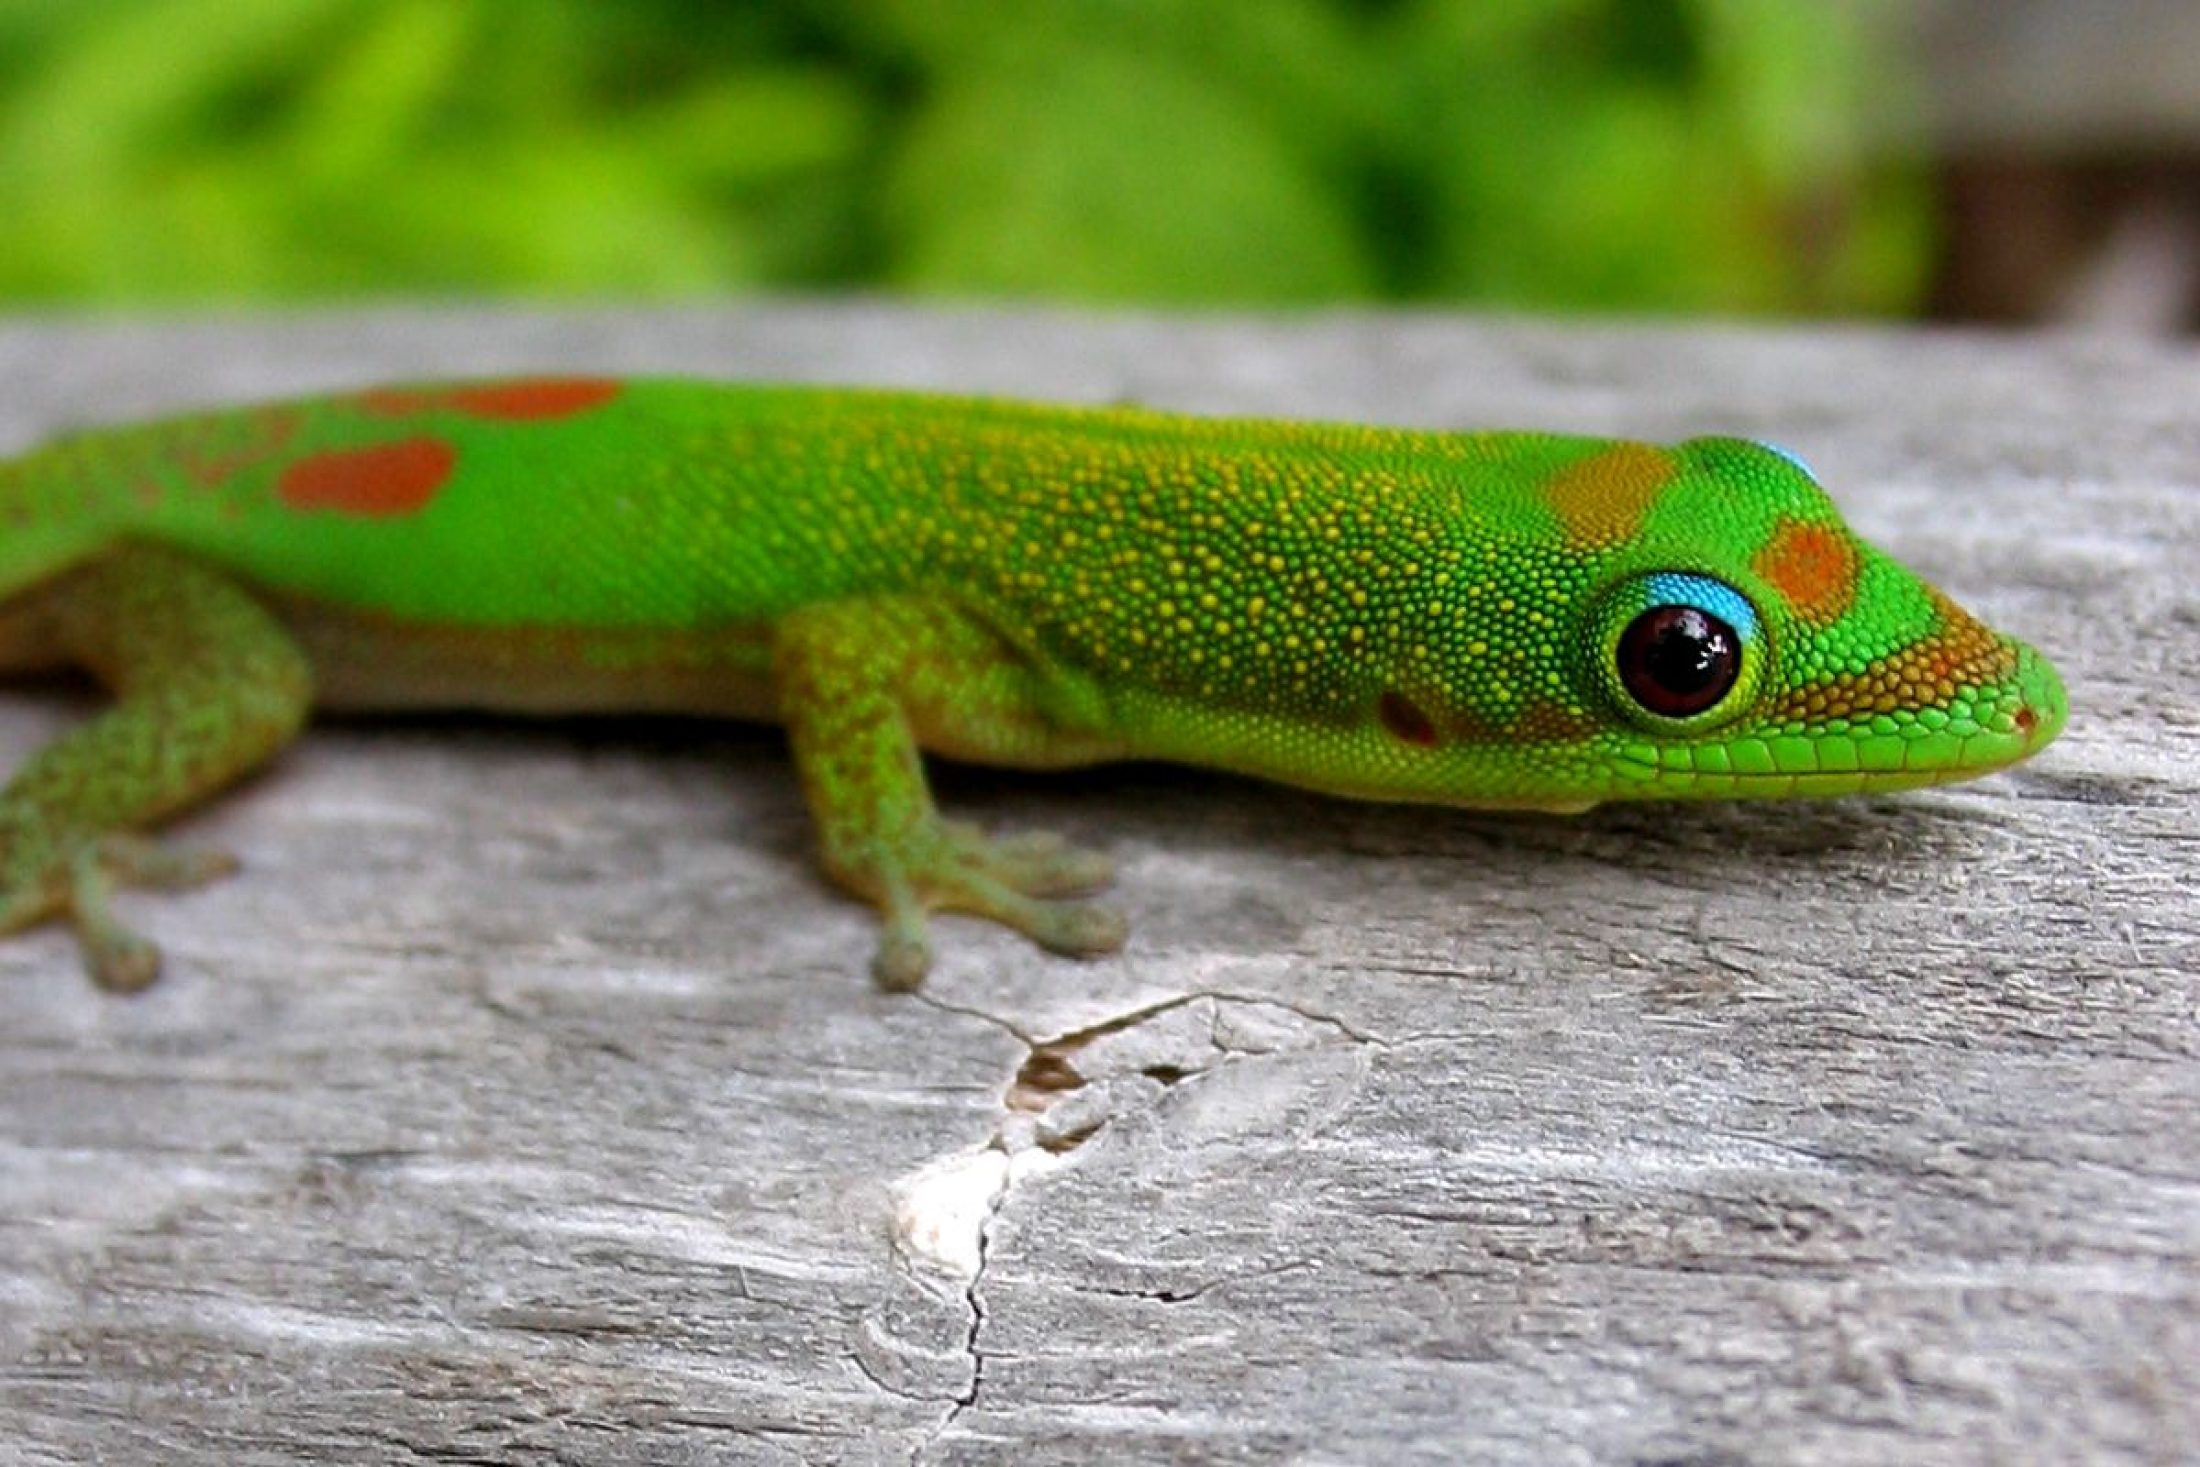 Rewilding Madagascar: The gold dust day gecko is revered because it eats the so-called